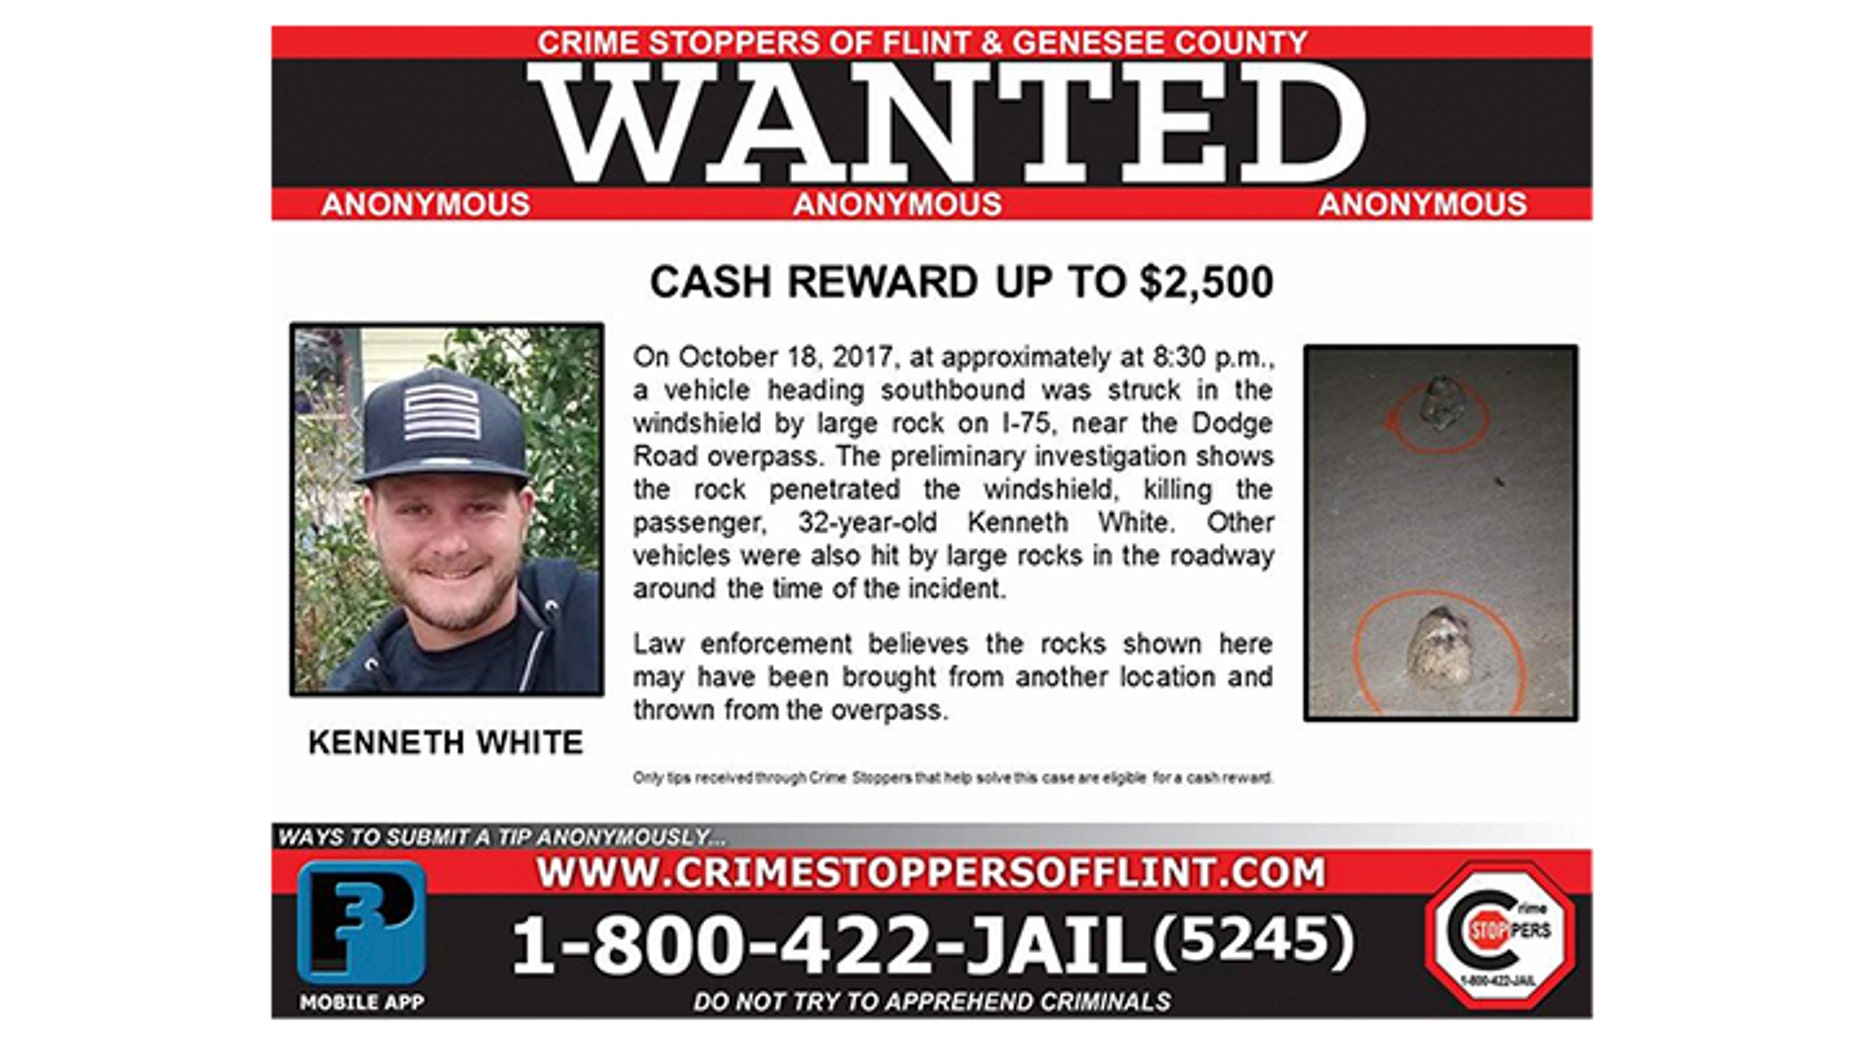 Crime Stoppers of Flint and Genesee County in Michigan posted a $2,500 reward in connection with an incident that killed Kenneth White.